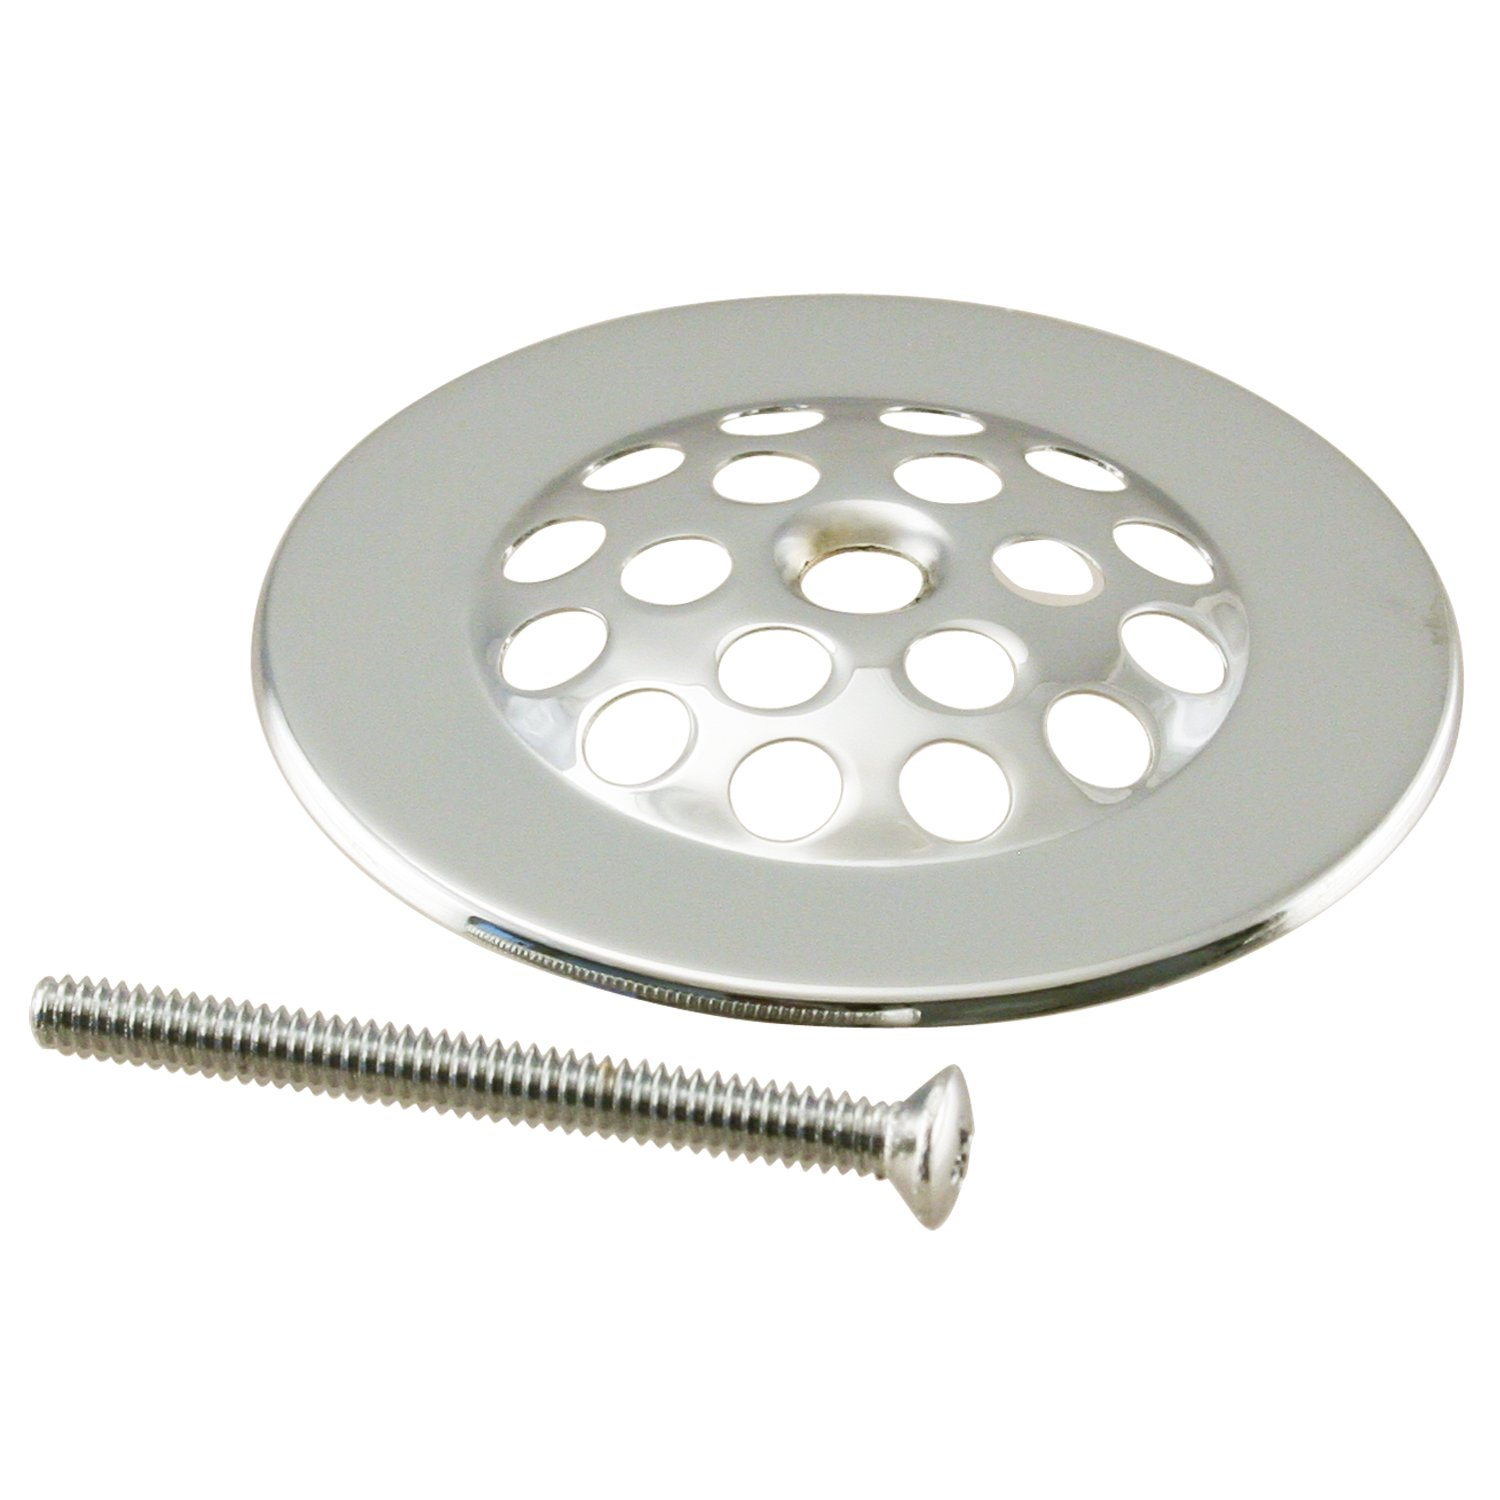 Westbrass Gerber Style Bee-HiveTub Strainer Grid with Screw, Polished Nickel, D327-05 by Westbrass